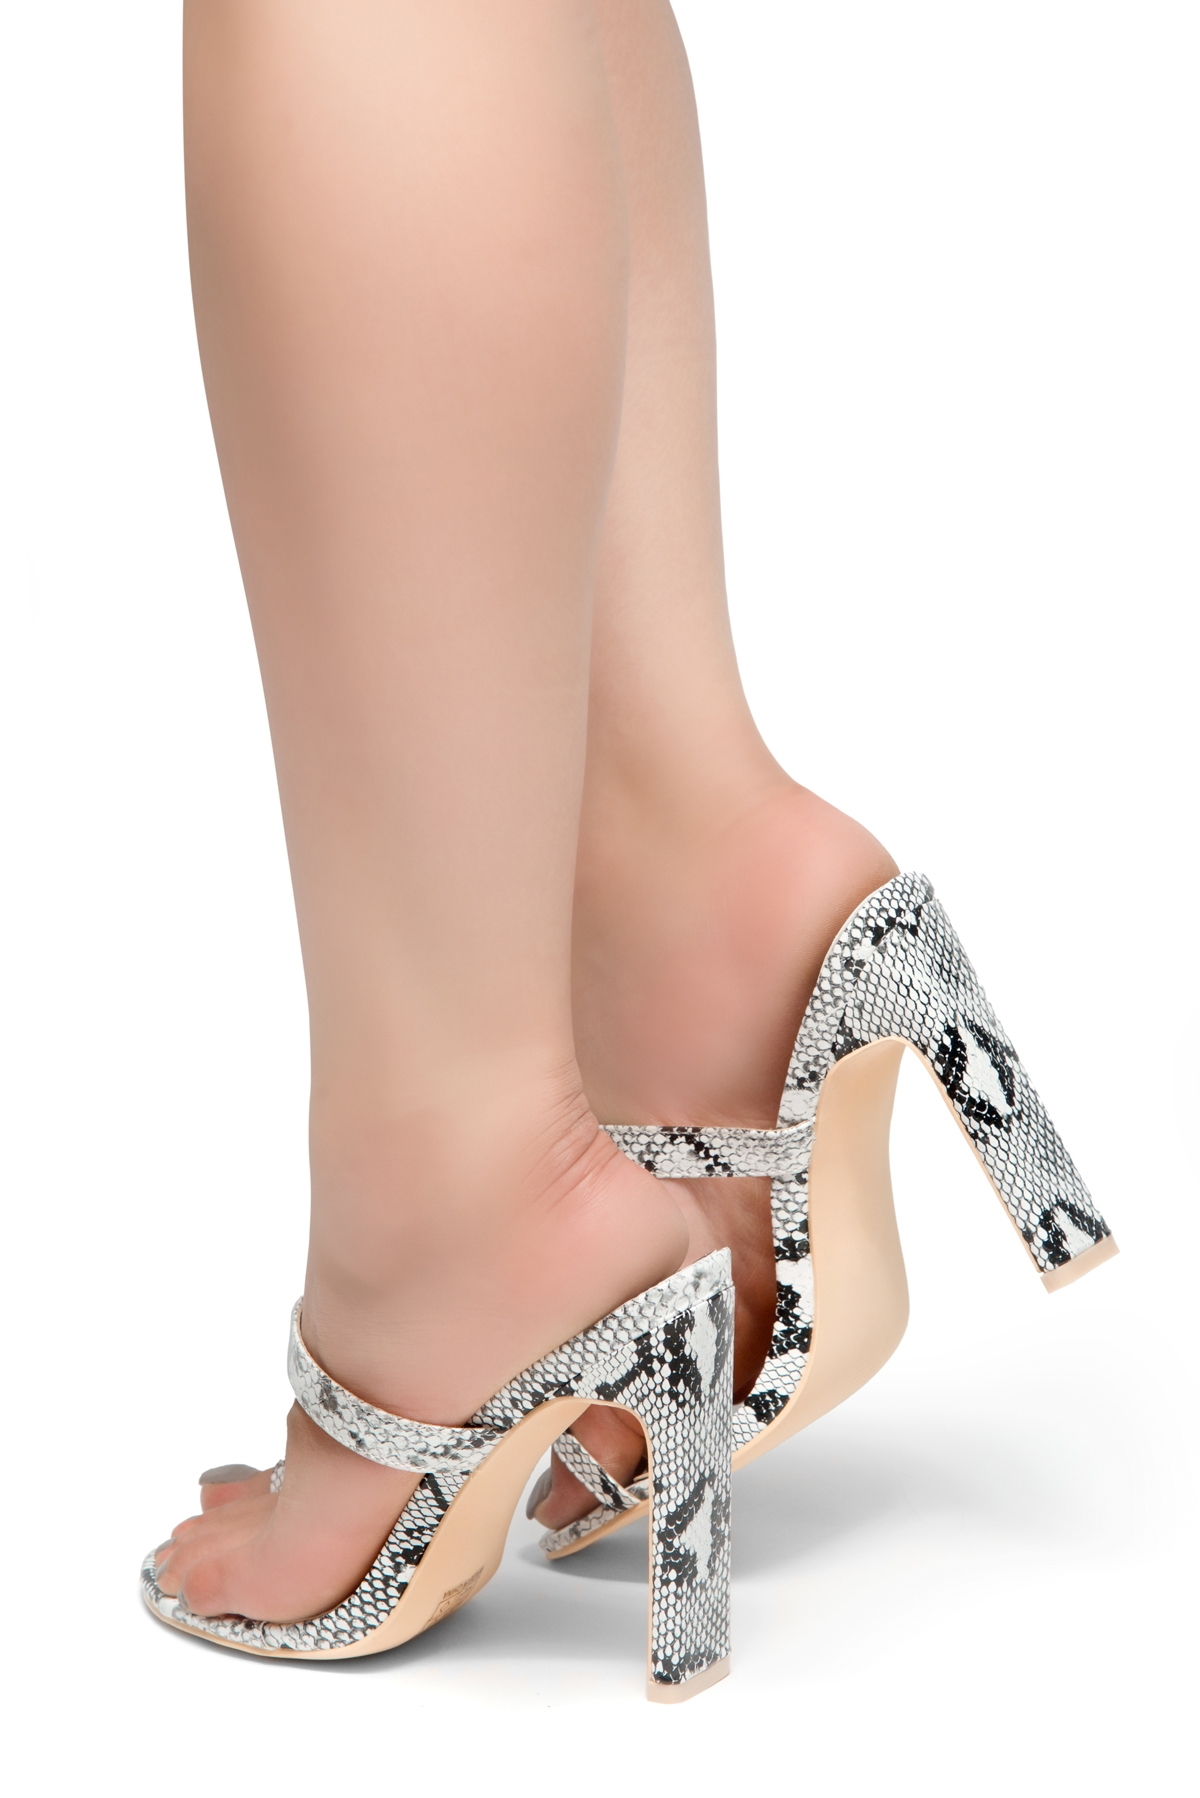 b8b45425a HerStyle Sasseta- Toe Ring Sandal with simple single vamp Strap, open toe,  flat Stiletto Heel (Snake)